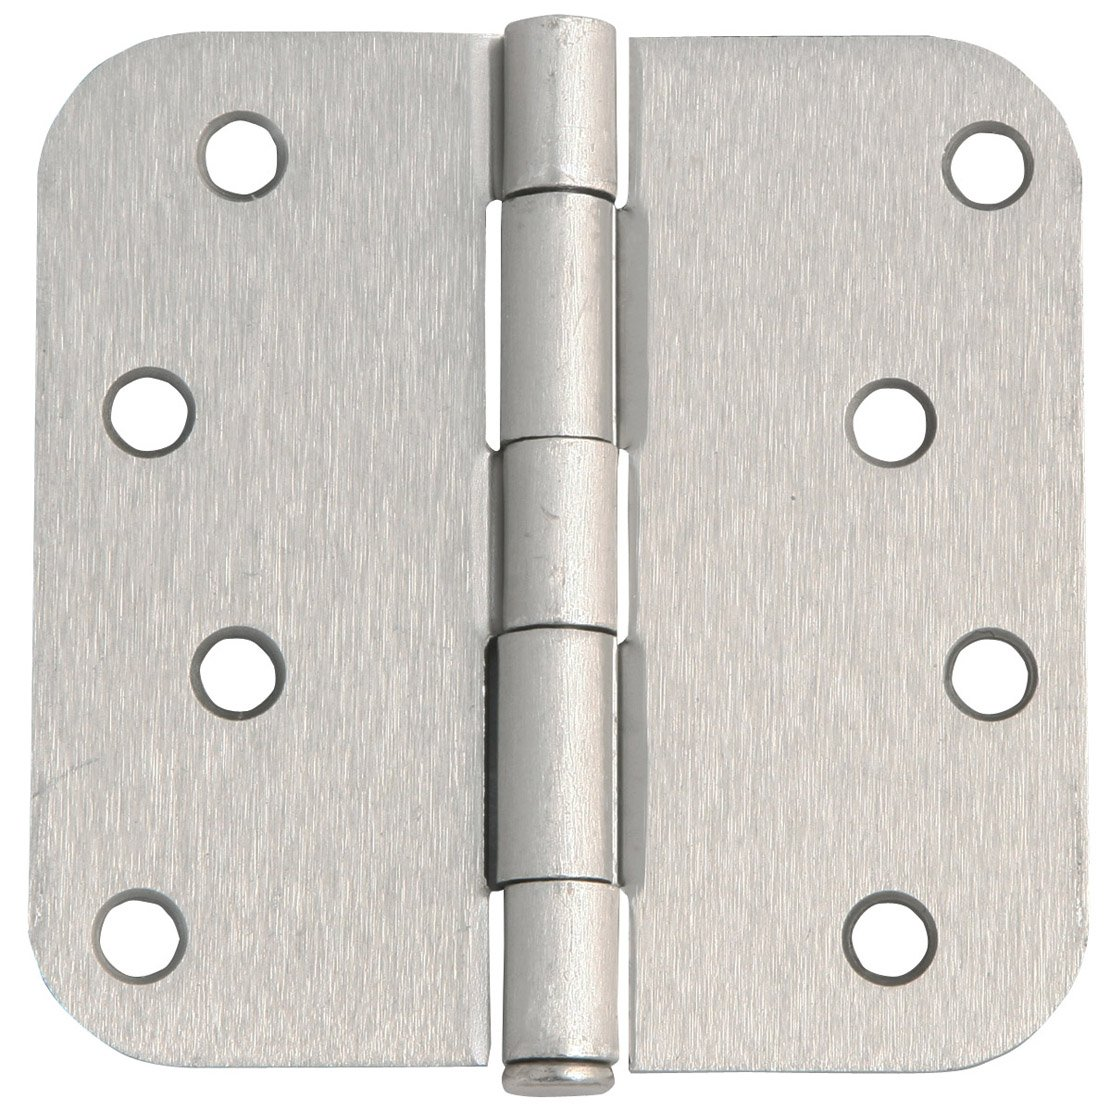 Design House 202572 8-Hole Door Hinge 4'', Satin Nickel, 4'' X 4''